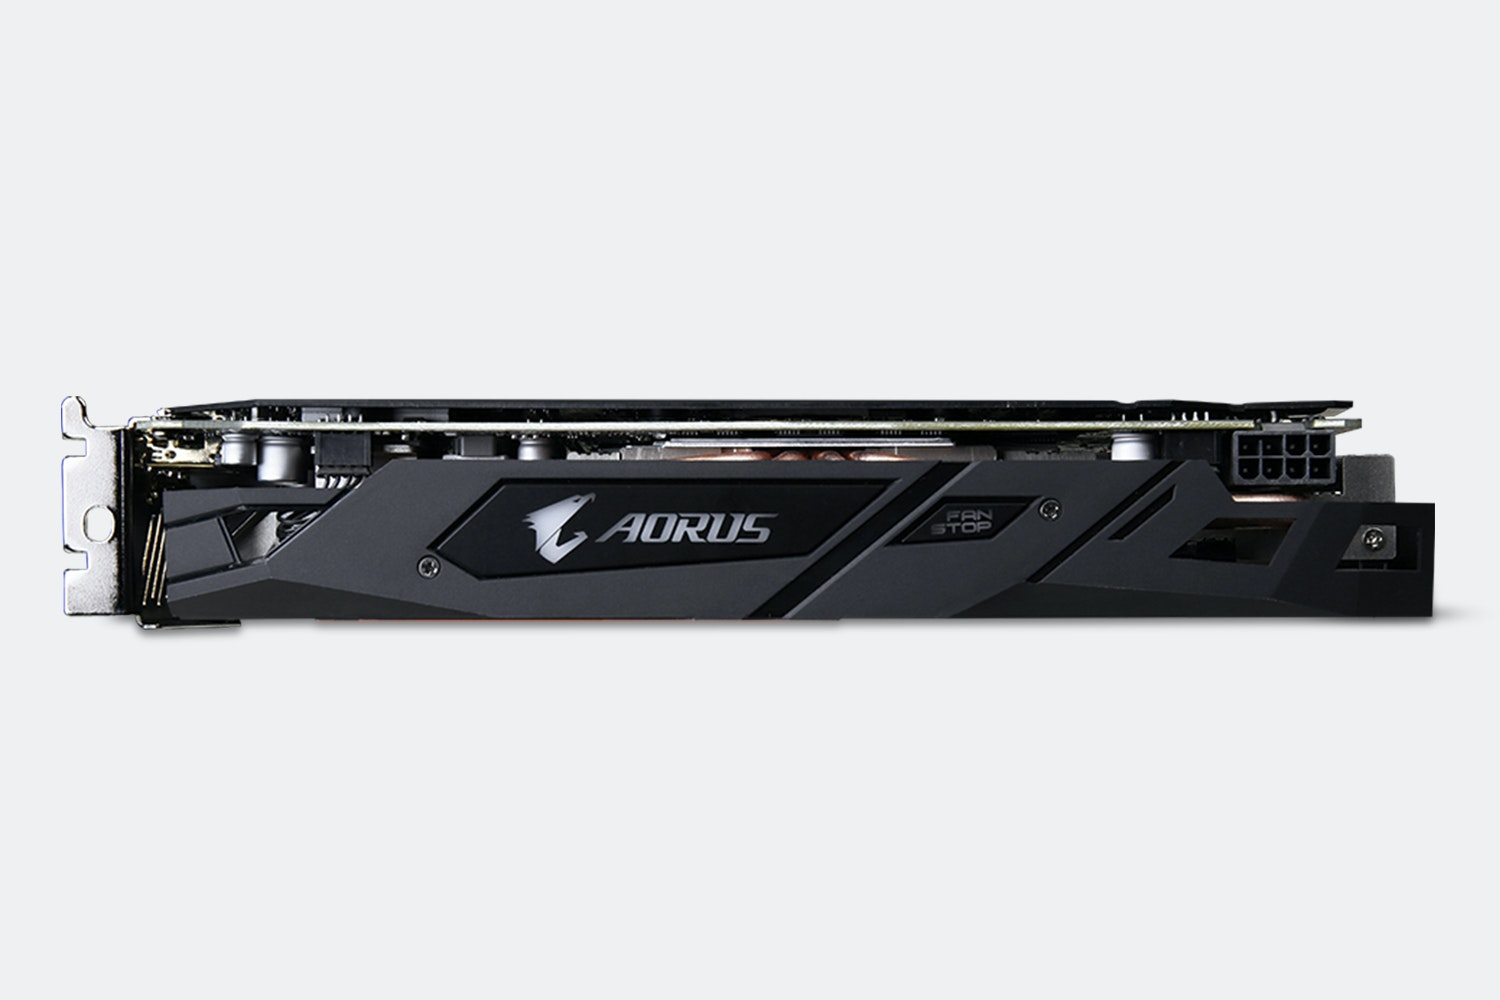 AORUS Radeon RX580 8G Graphics Card